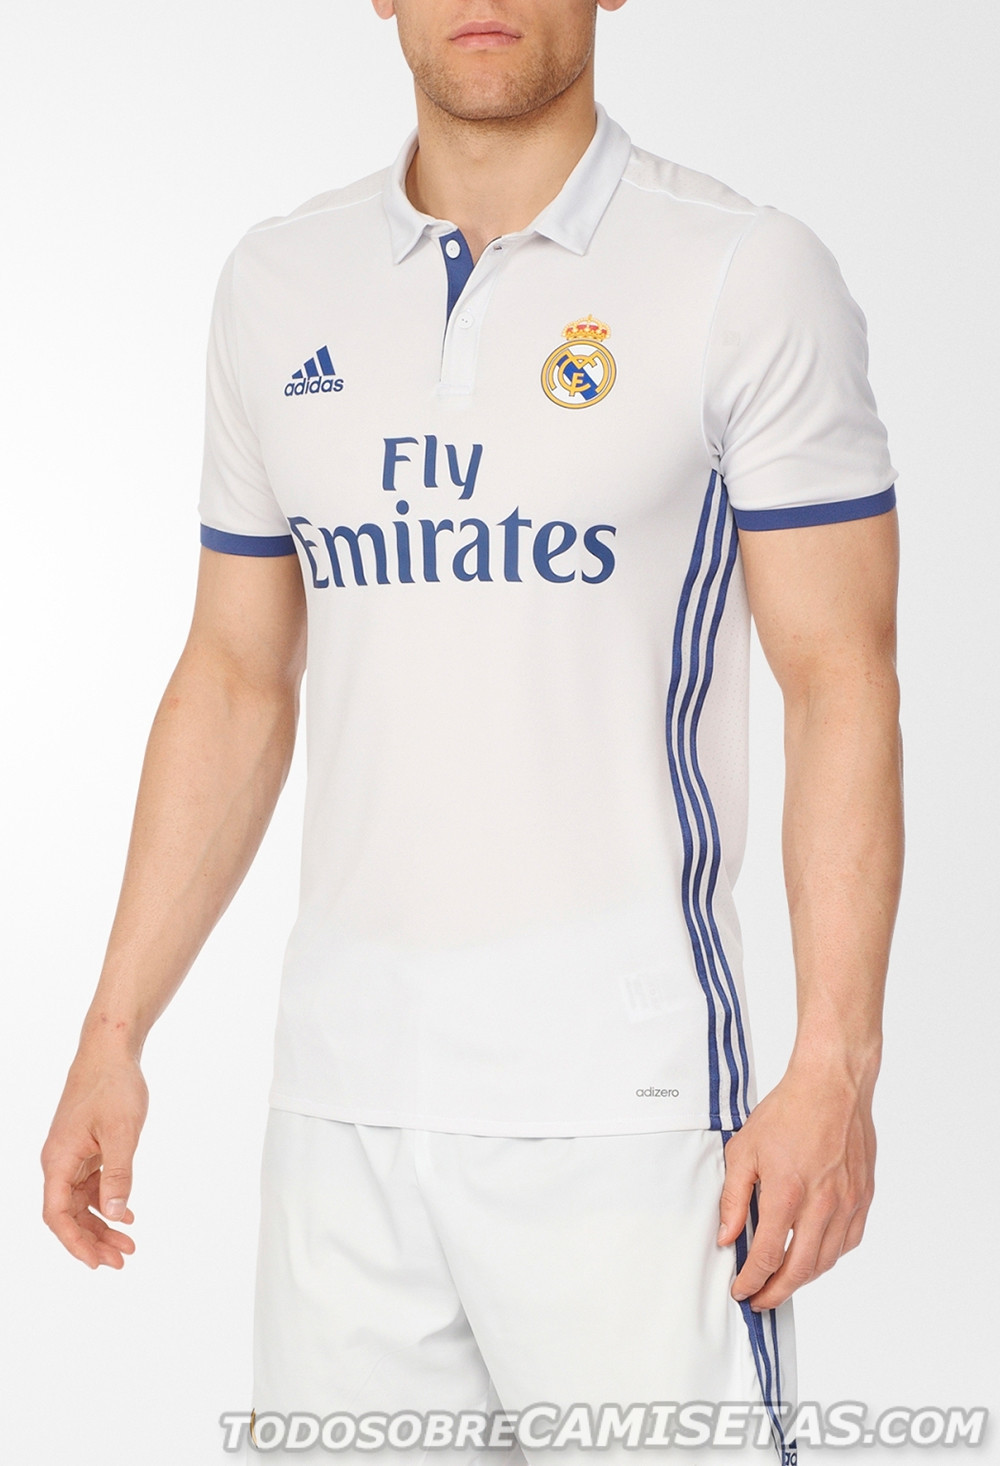 Real-Madrid-2016-17-adidas-new-home-kit-30.jpg